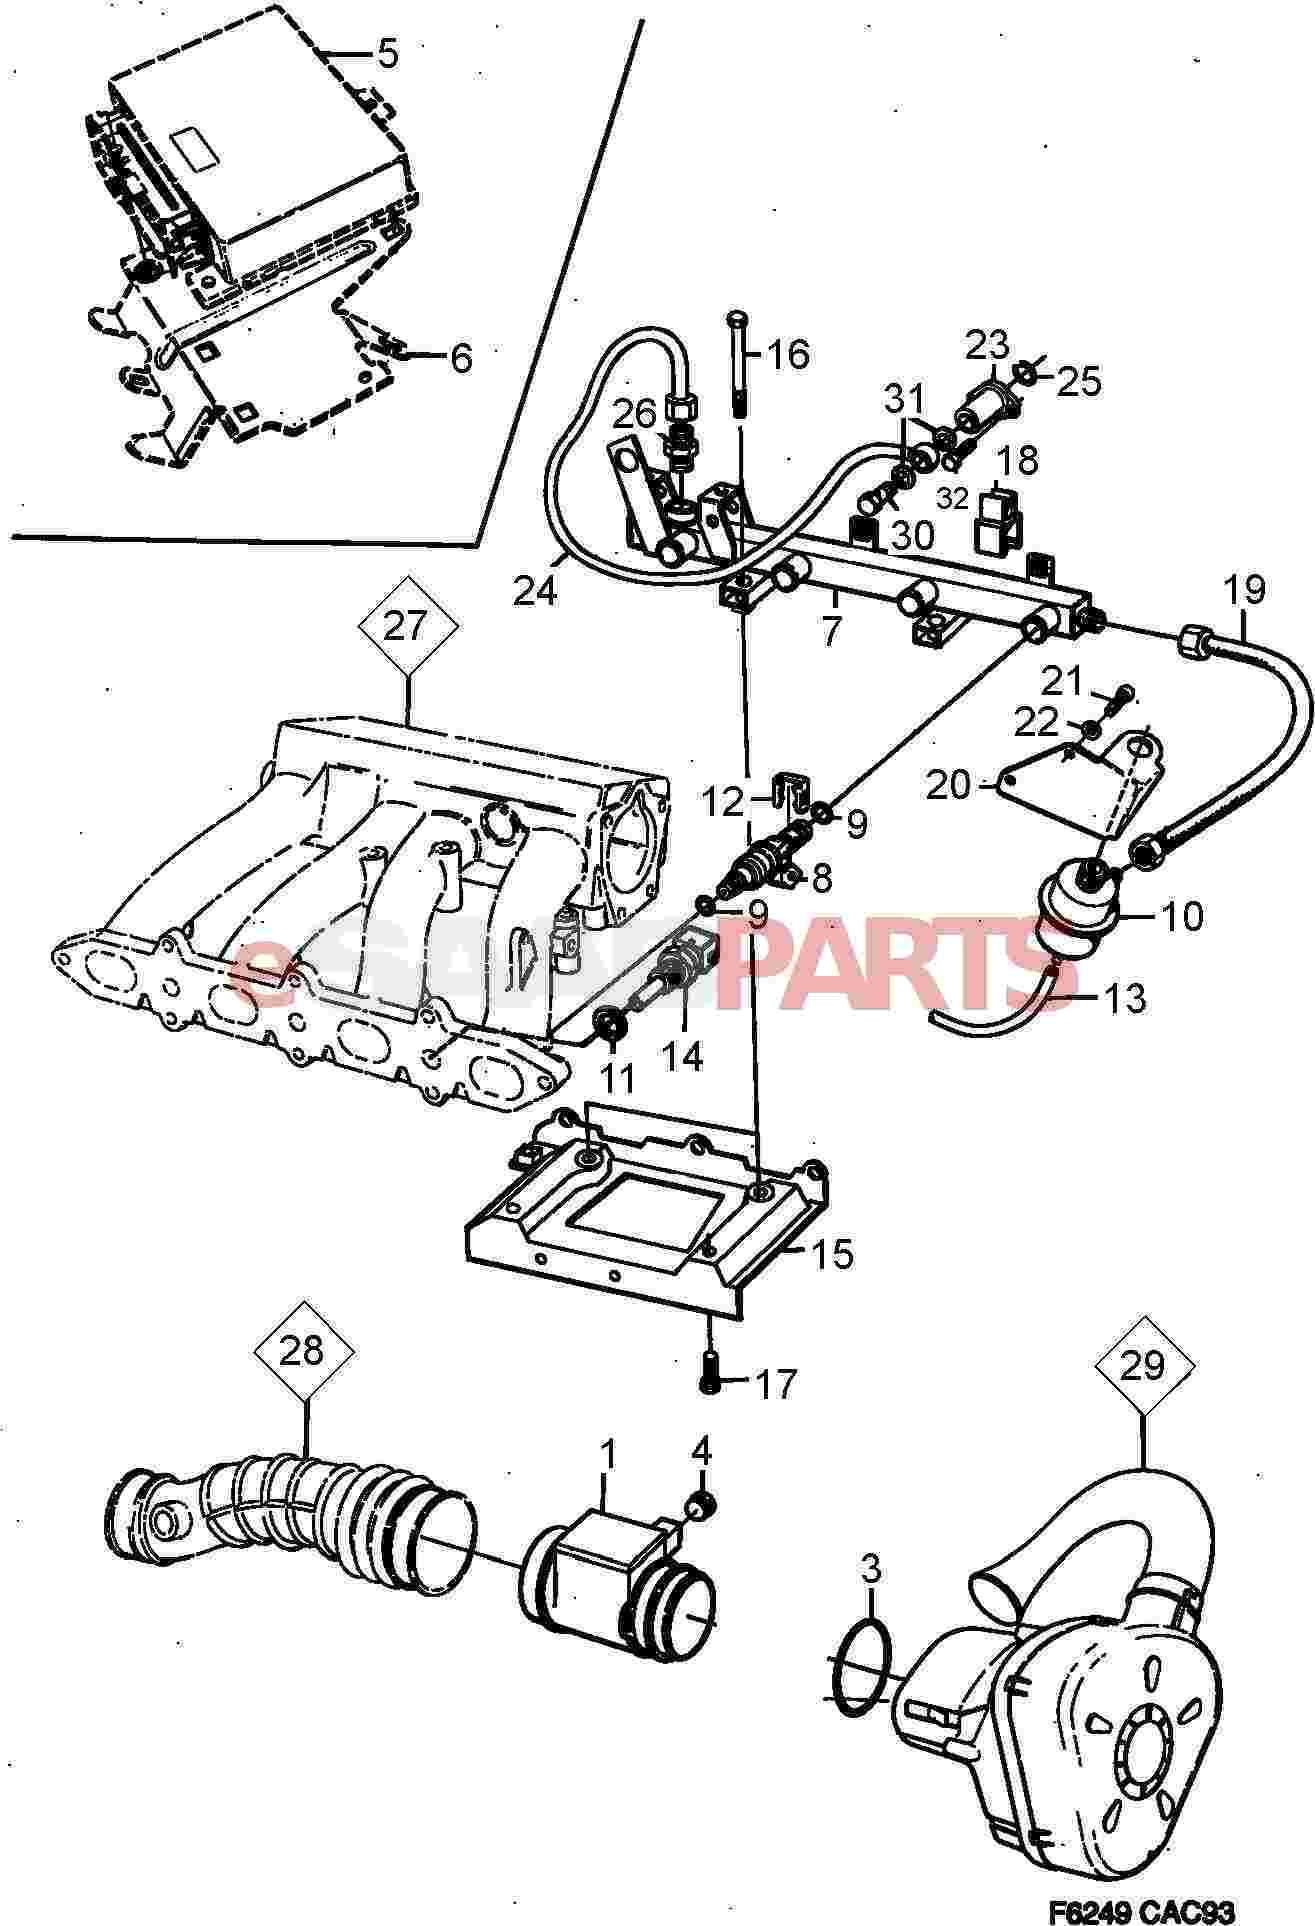 Parts Diagram Dodge Ram Forum Dodge Truck Forums.html